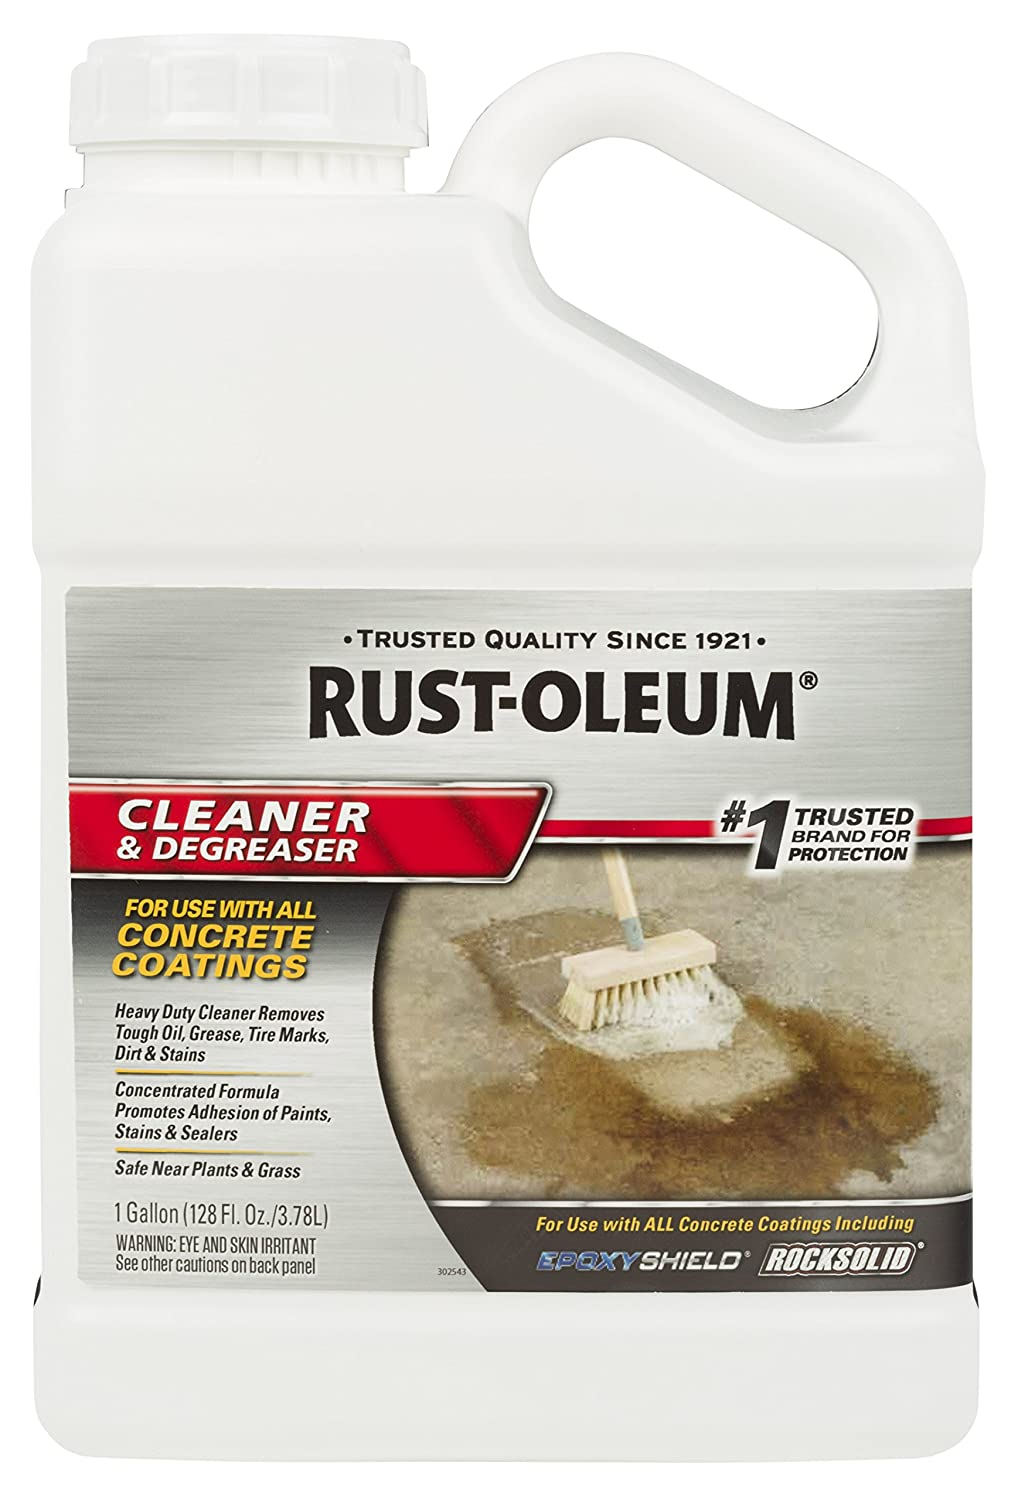 Rust-Oleum 301243 Cleaner and Degreaser, 1 gallon